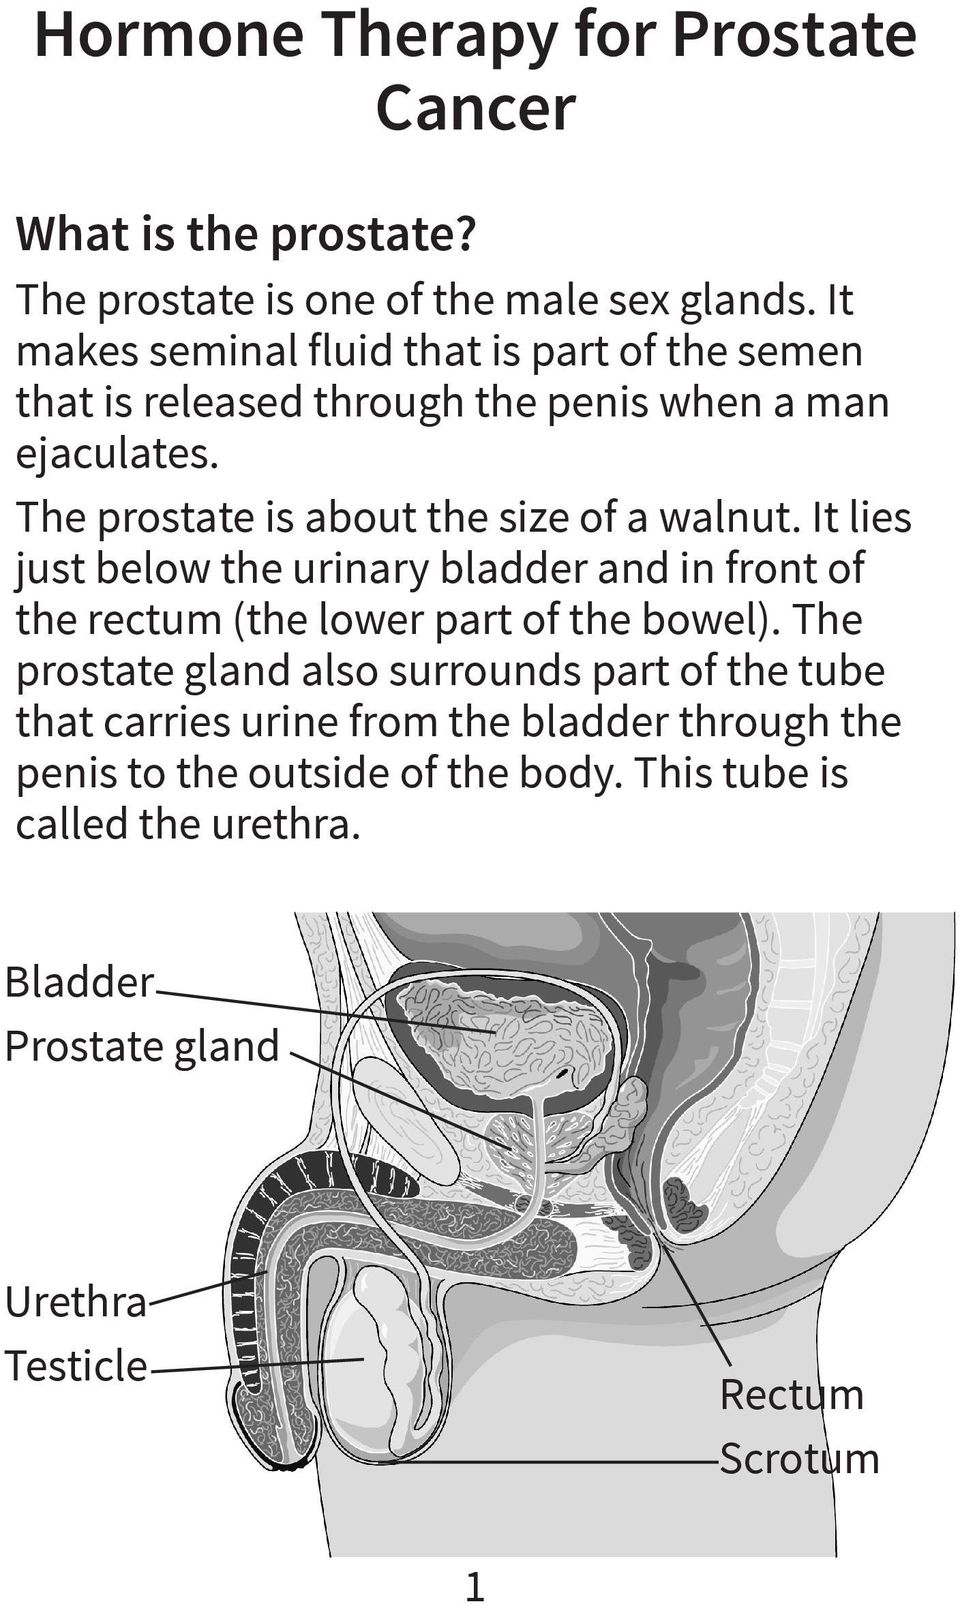 The prostate is about the size of a walnut. It lies just below the urinary bladder and in front of the rectum (the lower part of the bowel).